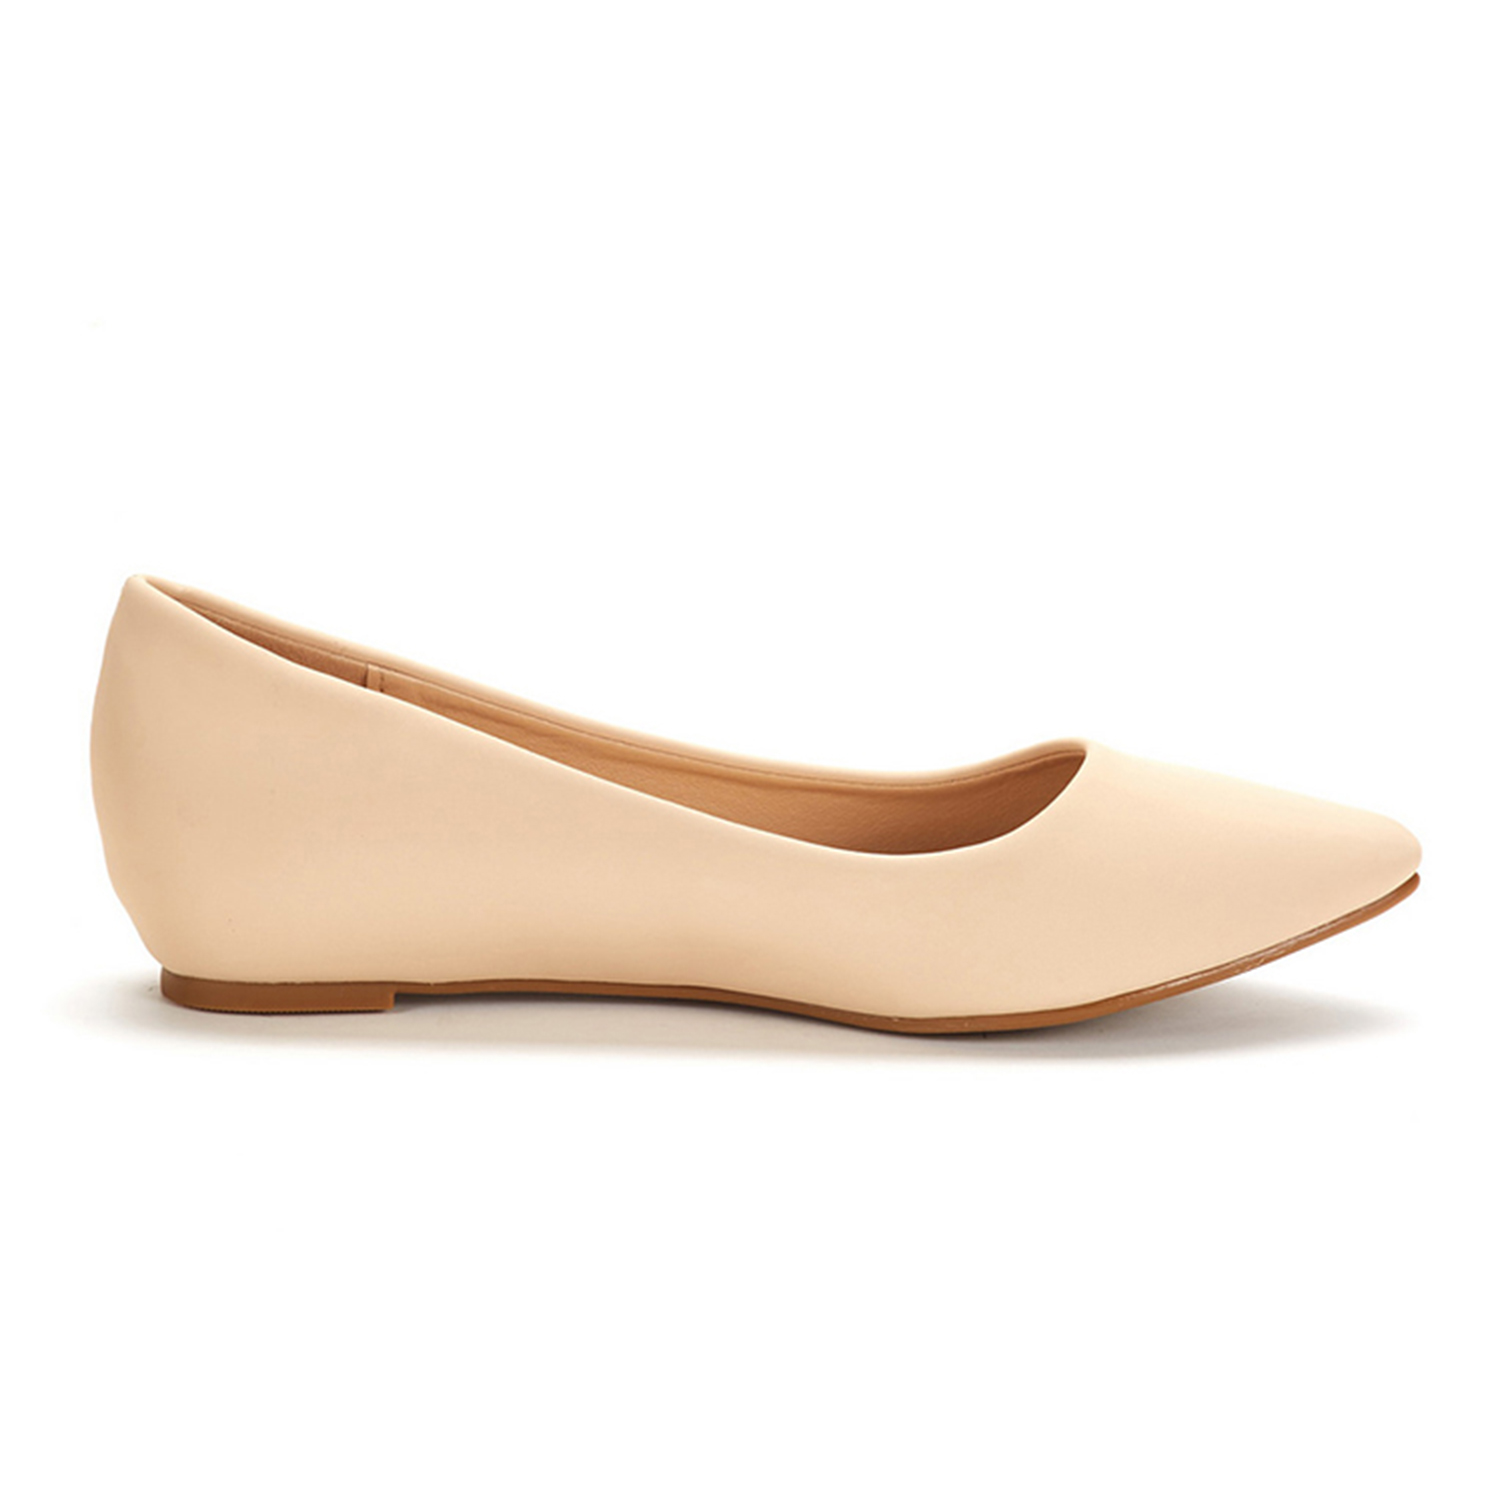 DREAM-PAIRS-Women-Low-Wedge-Flats-Ladies-Pointed-Toe-Slip-On-Comfort-Flat-Shoes thumbnail 68